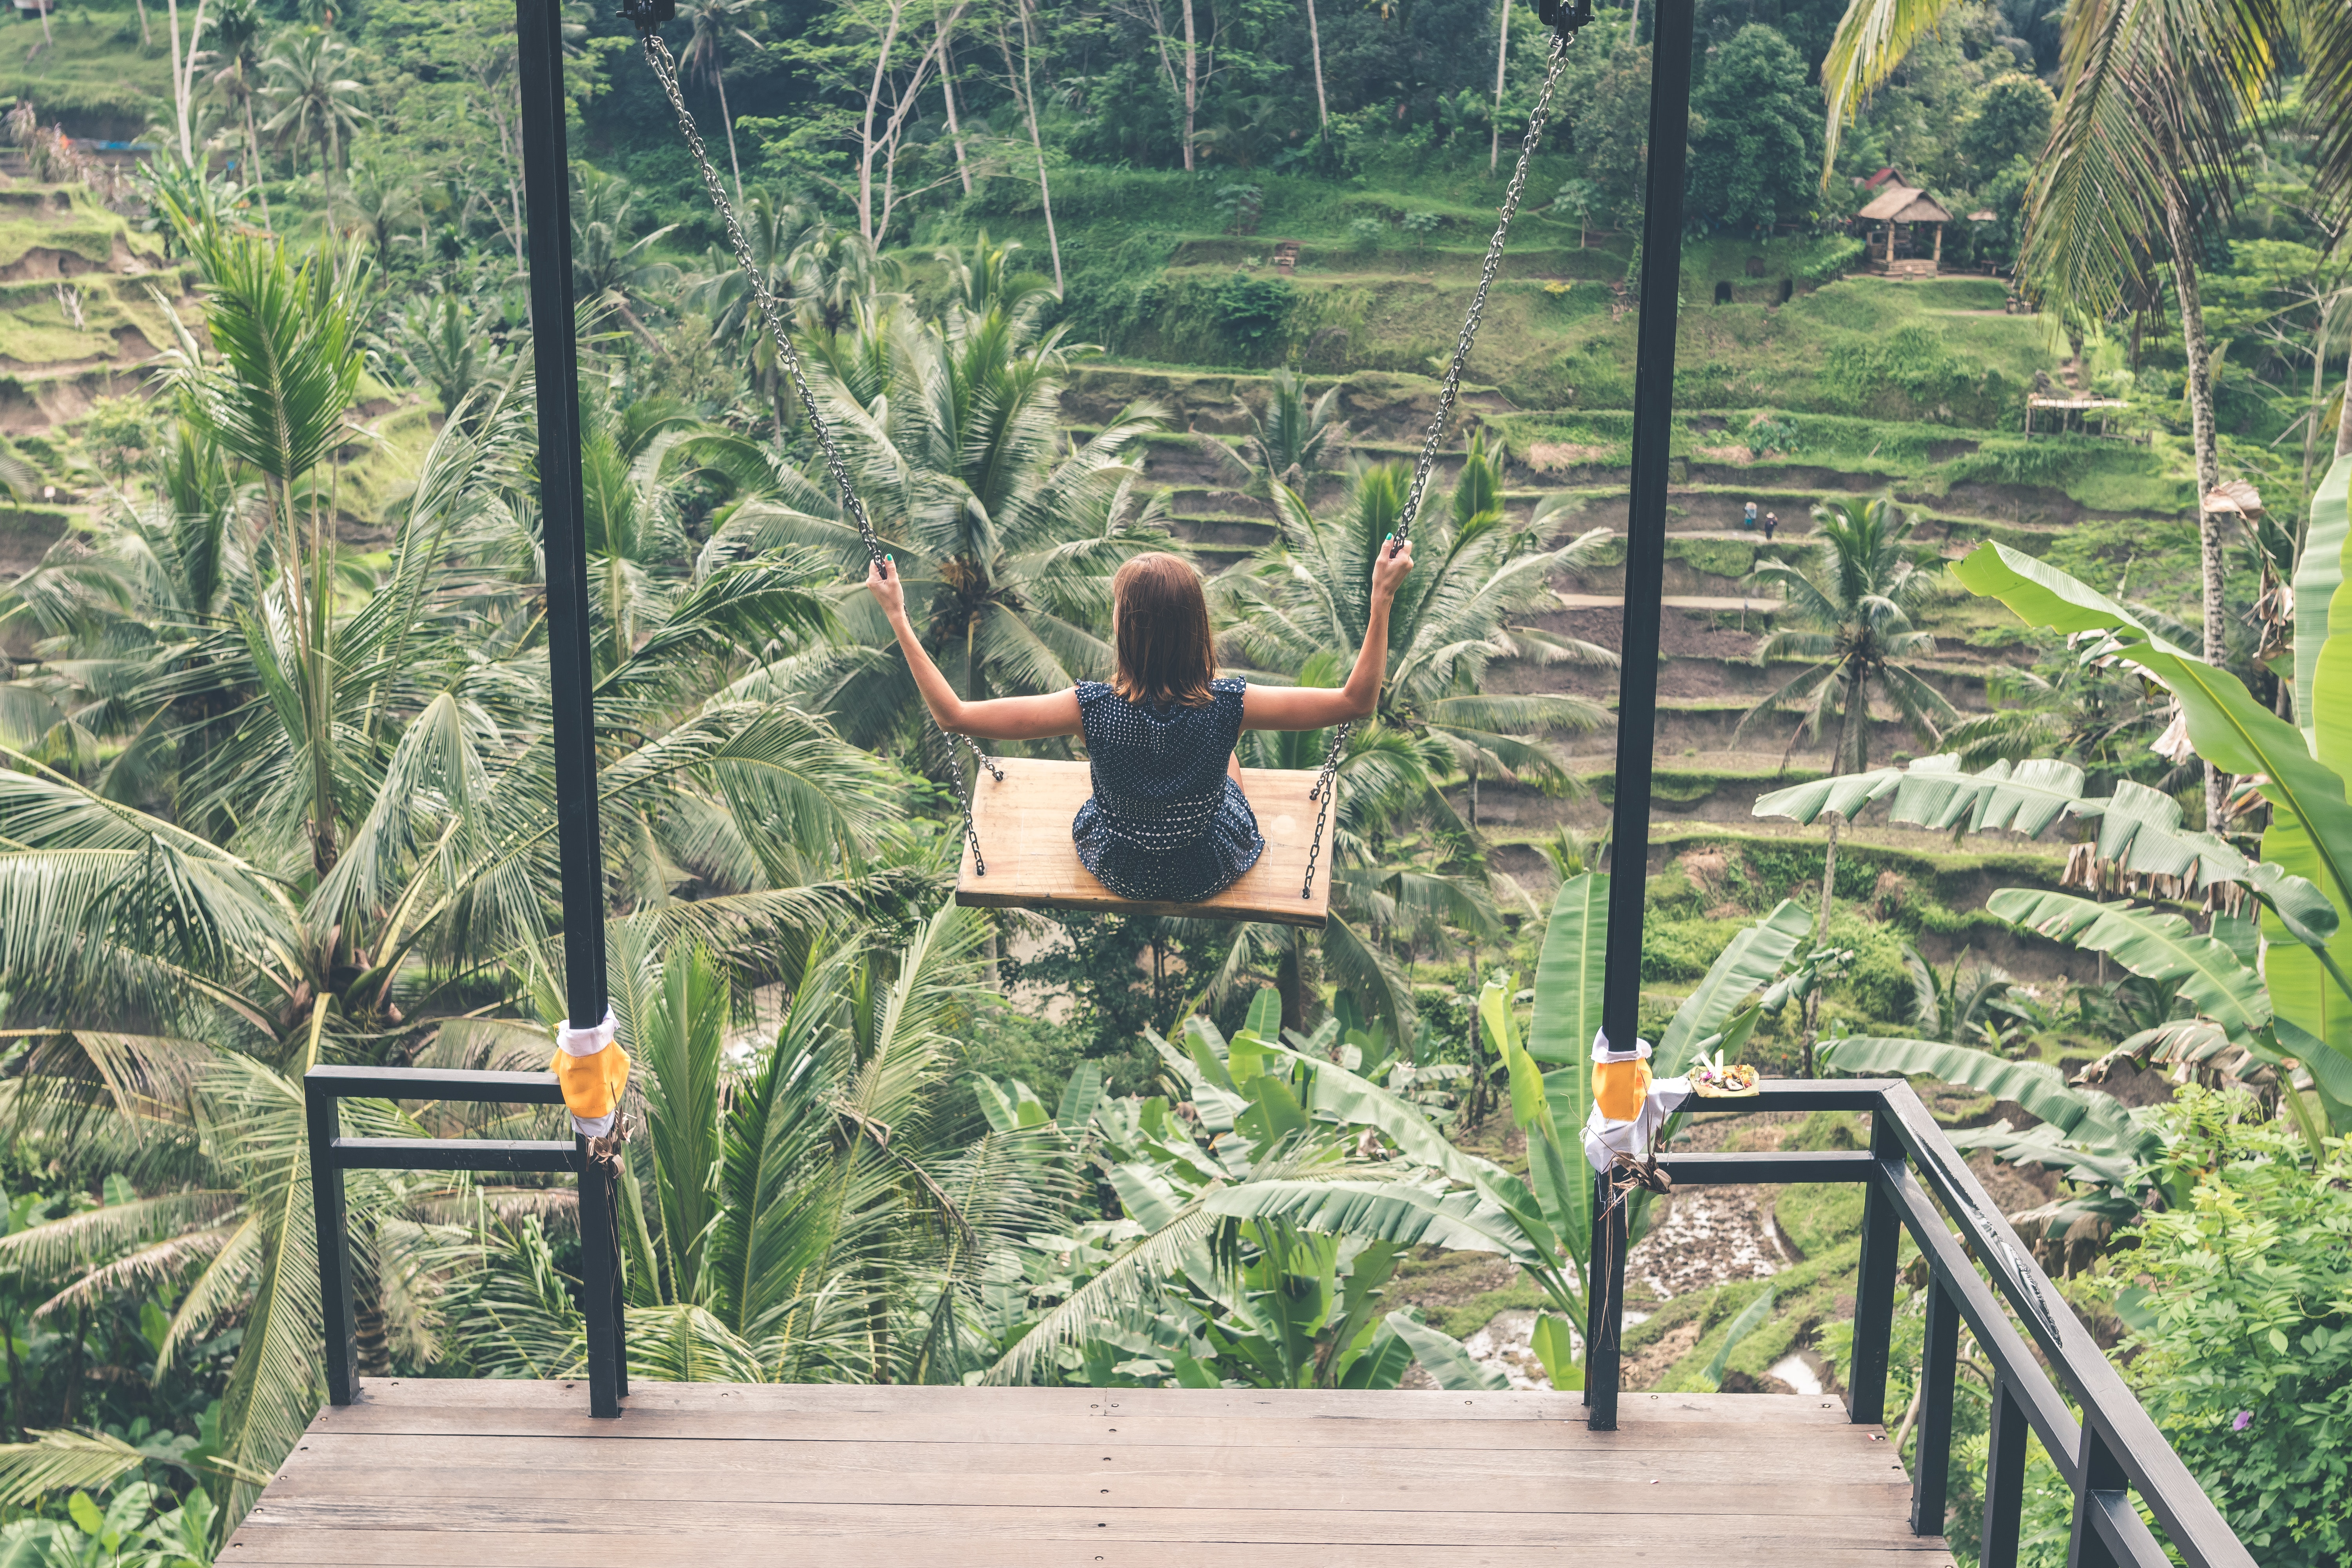 girl-hanging-palm-trees-906306